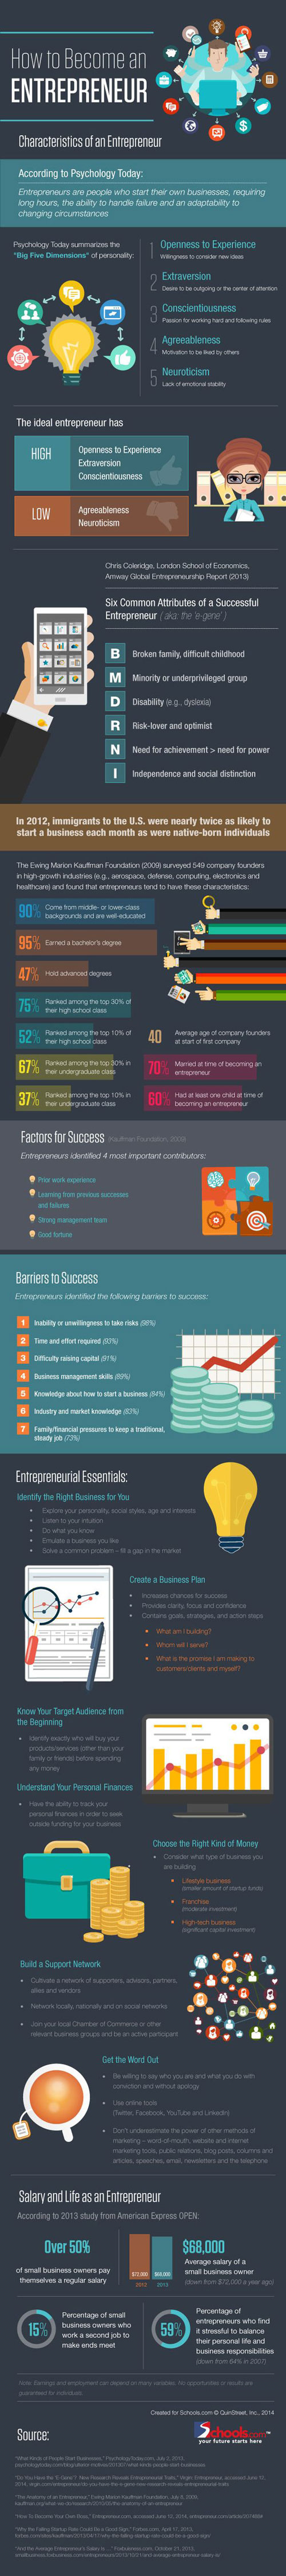 most commonly cited characteristics found in successful entrepreneur essay